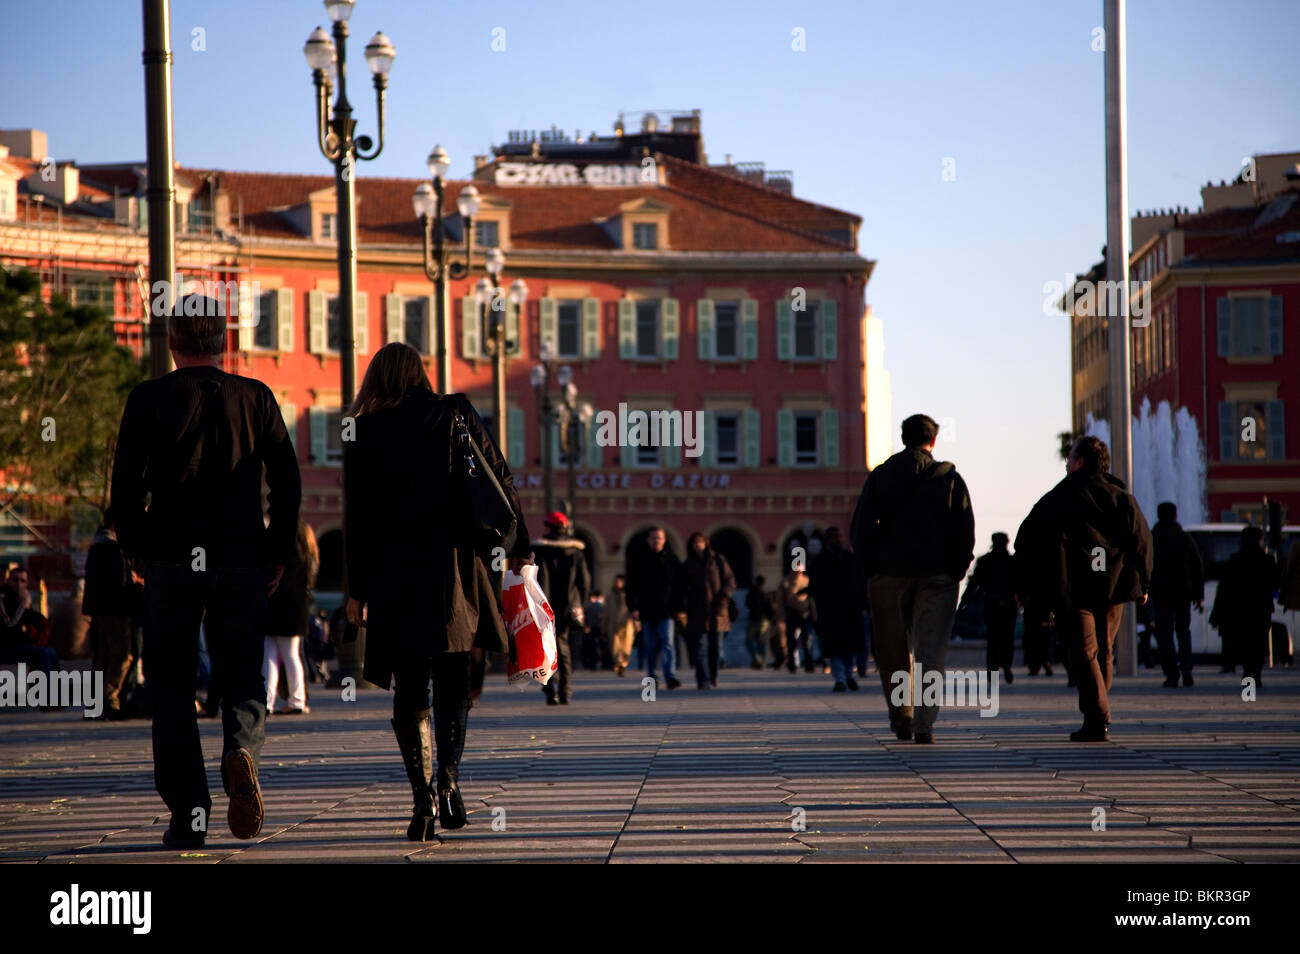 France, Cote D'Azur, Nice; Place Massena, one of the main squares of the city where the locals and tourists - Stock Image